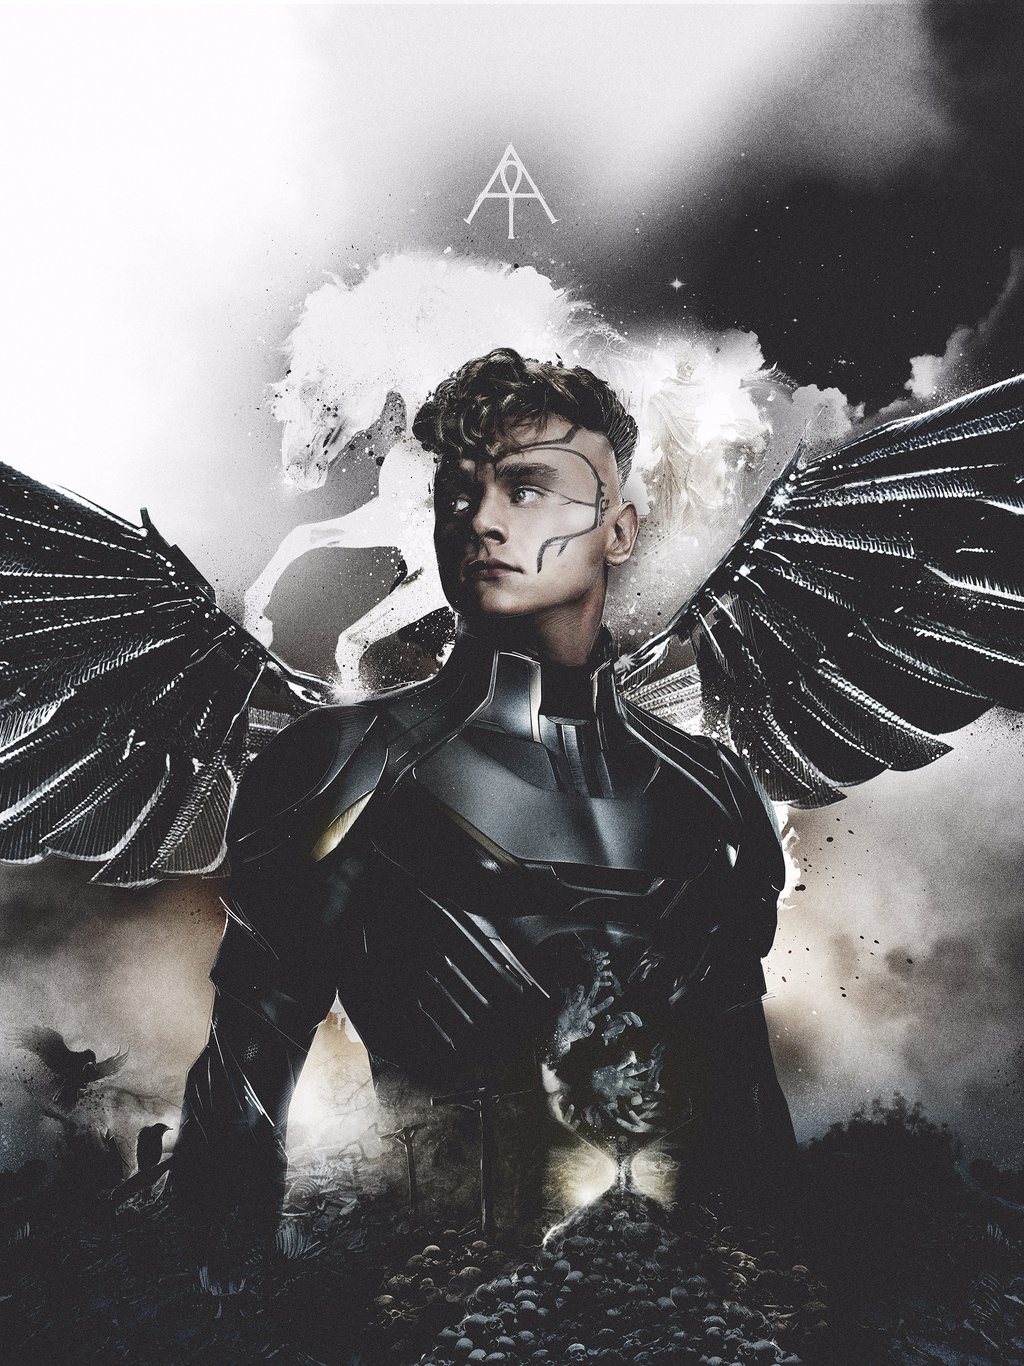 http://screenrant.com/wp-content/uploads/x-men-apocalypse-poster-archangel.jpeg